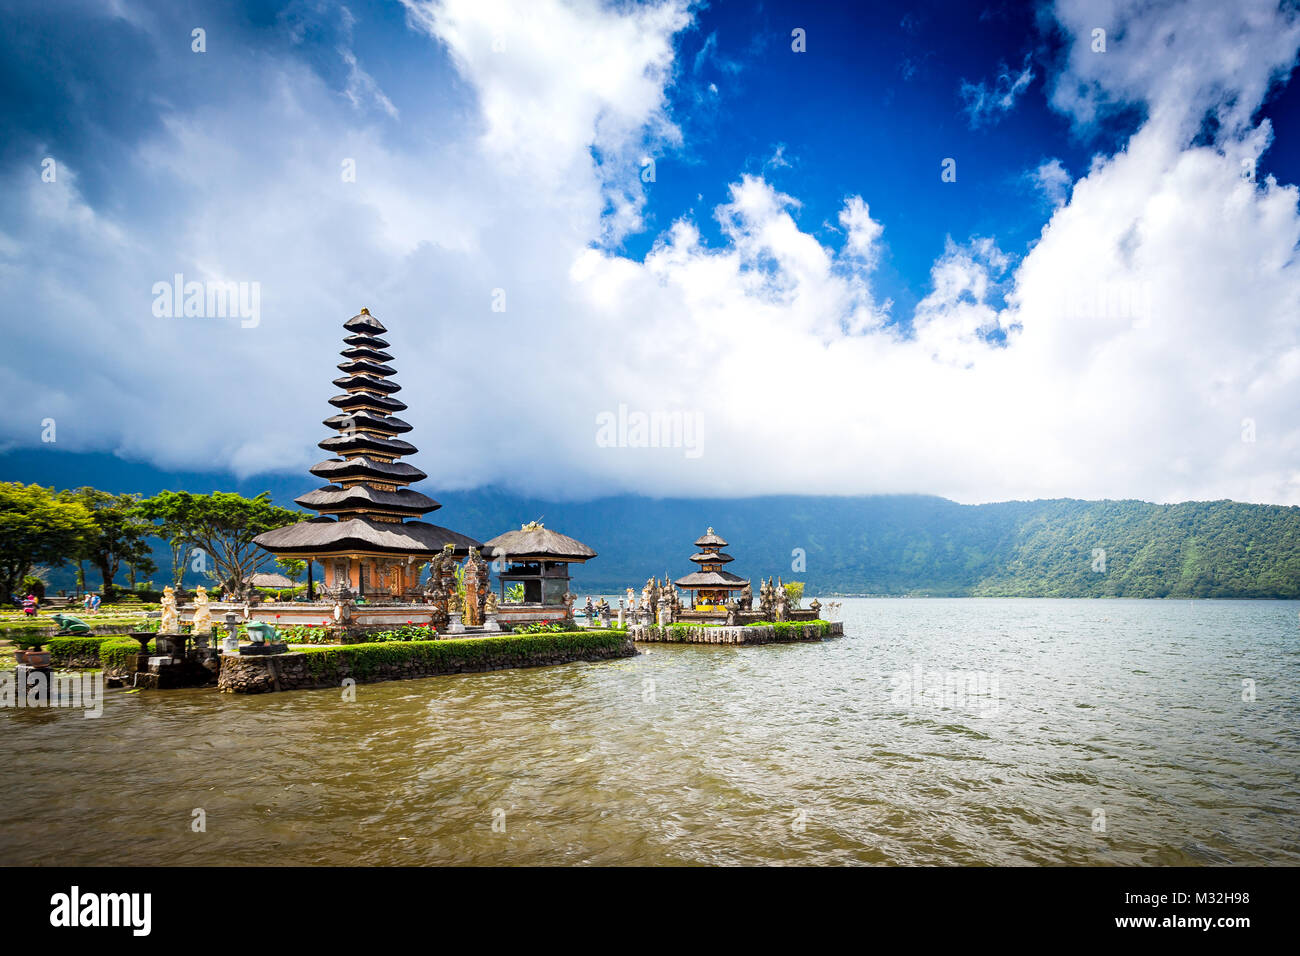 Pura Ulun Danu Bratan, Bali. Hindu temple on Bratan lake. Major Shivaite and water temple Bali, Indonesia. Travel Stock Photo